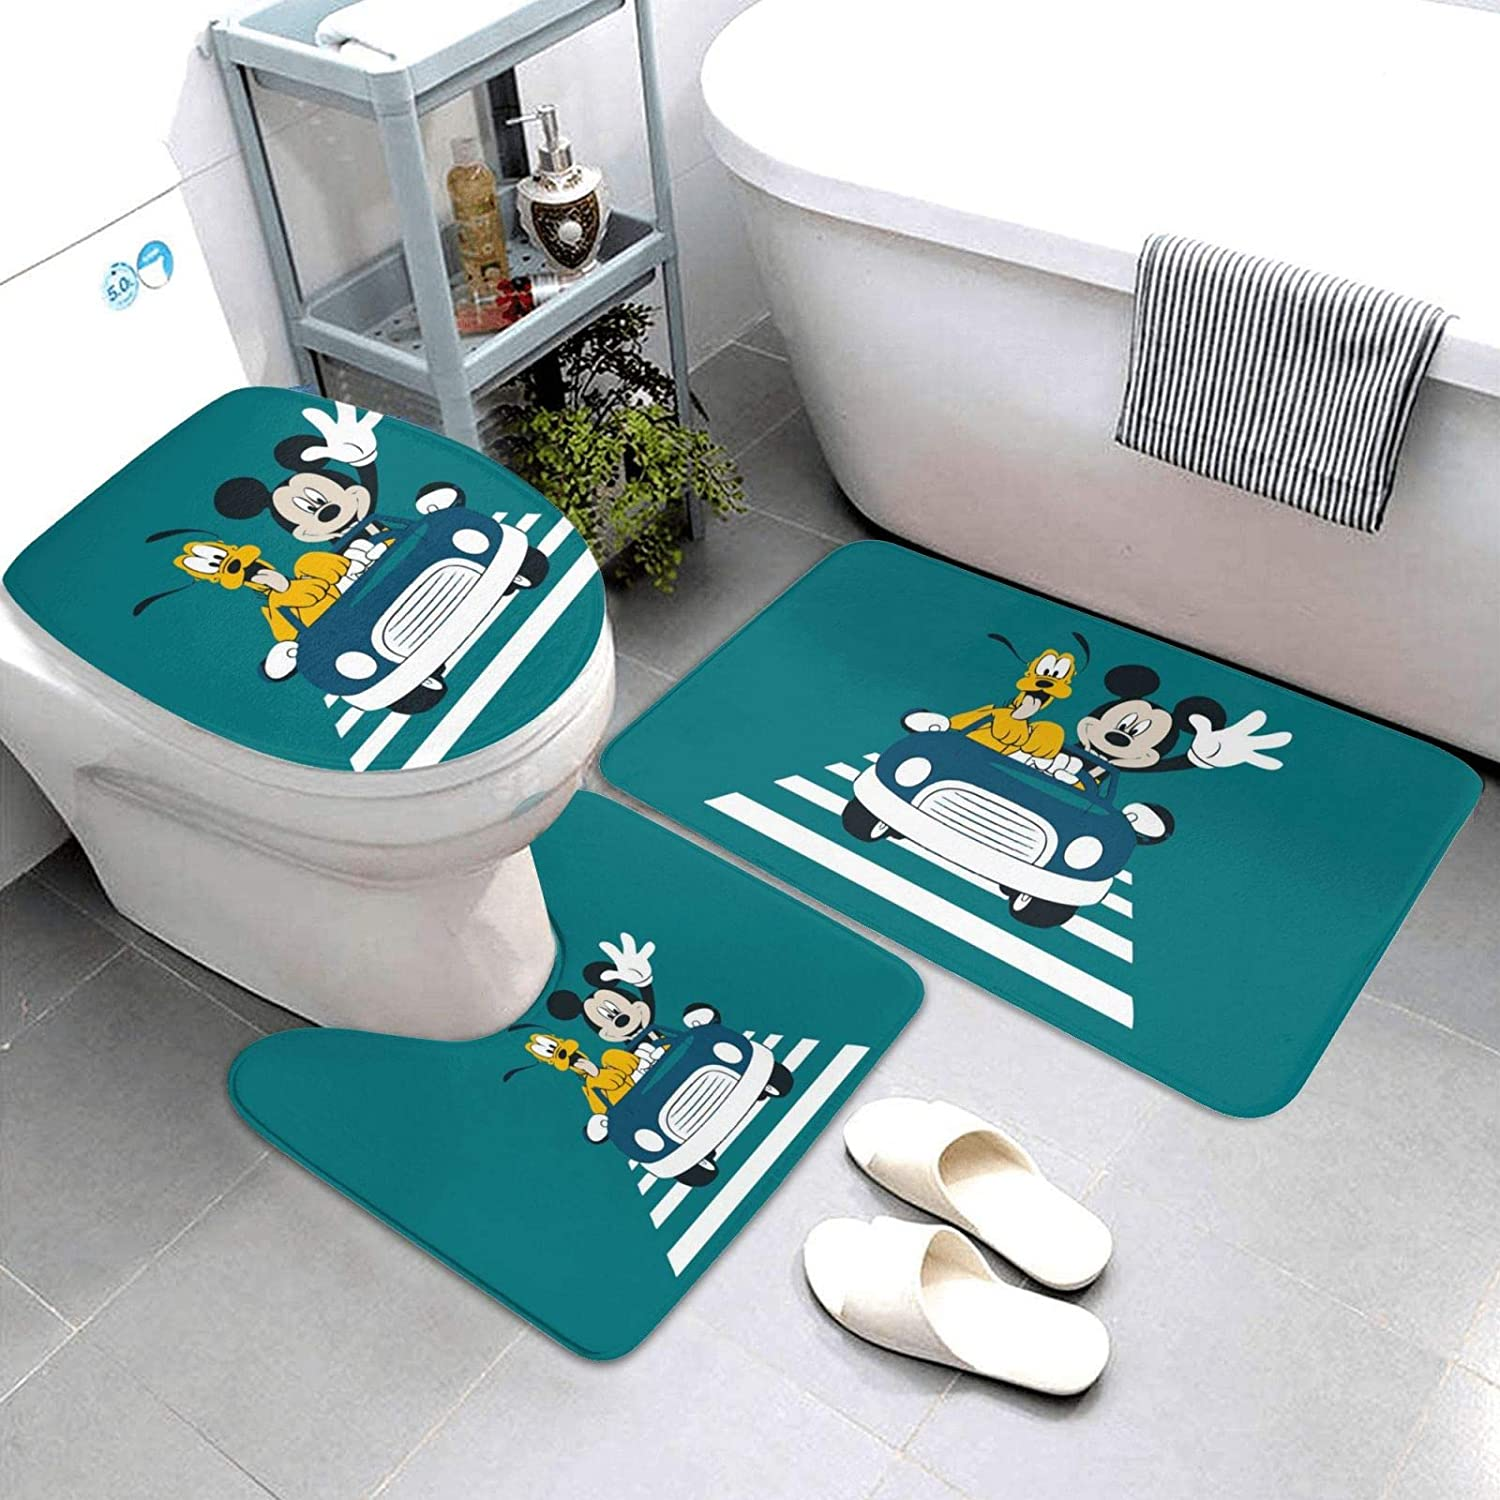 Kshgzh latest Mickey Mouse Donald Duck Driving Bathroom Piece Set Rug 3 Surprise price